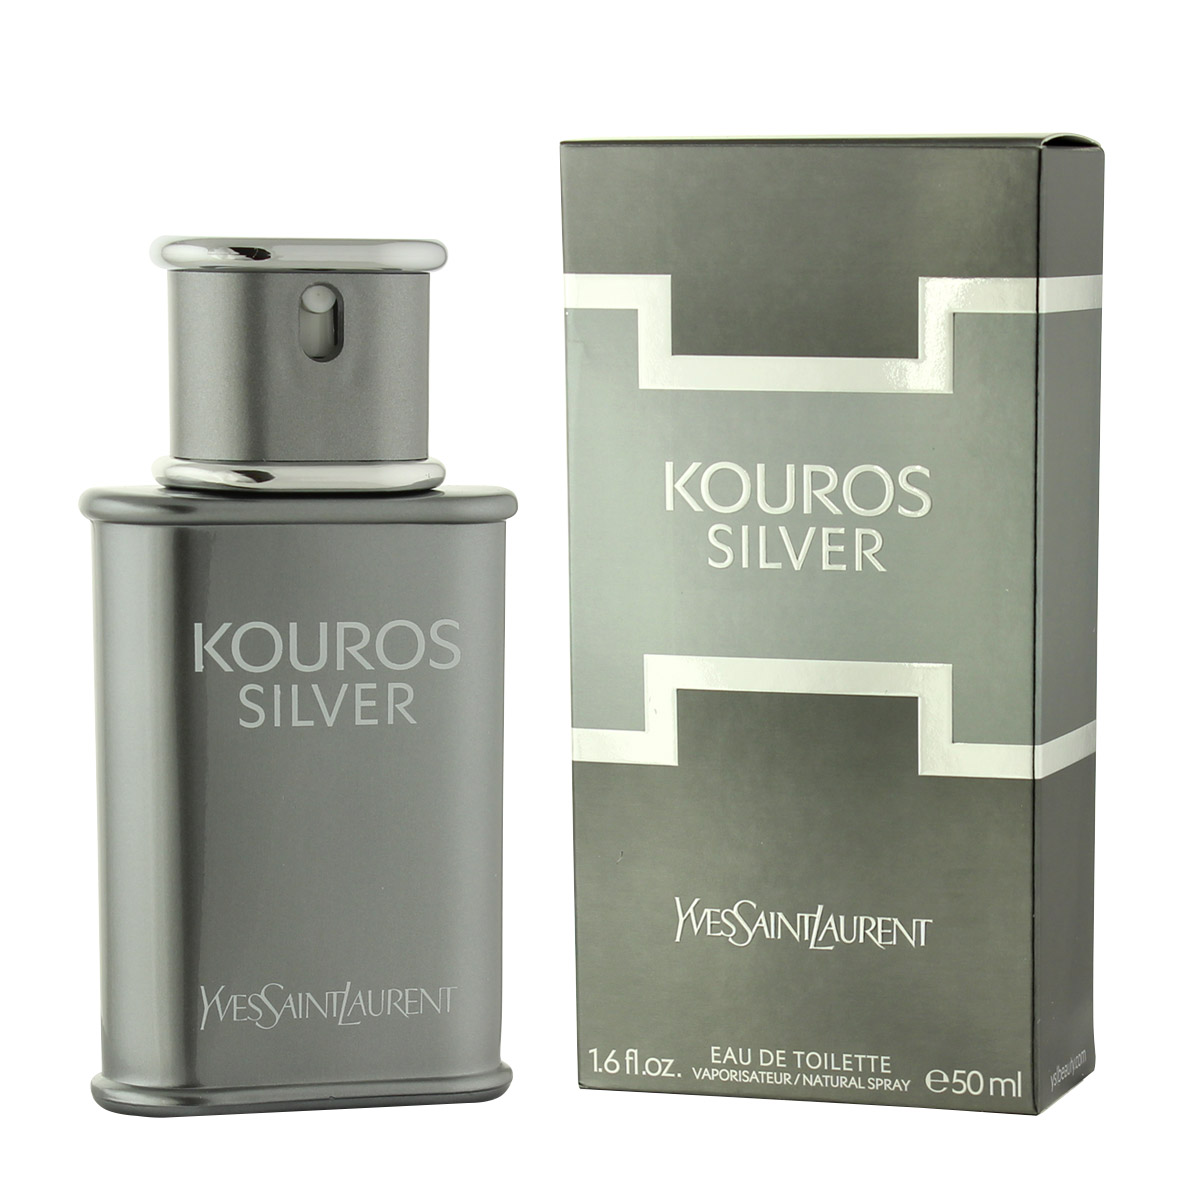 Yves Saint Laurent Kouros Silver Eau De Toilette 50 ml